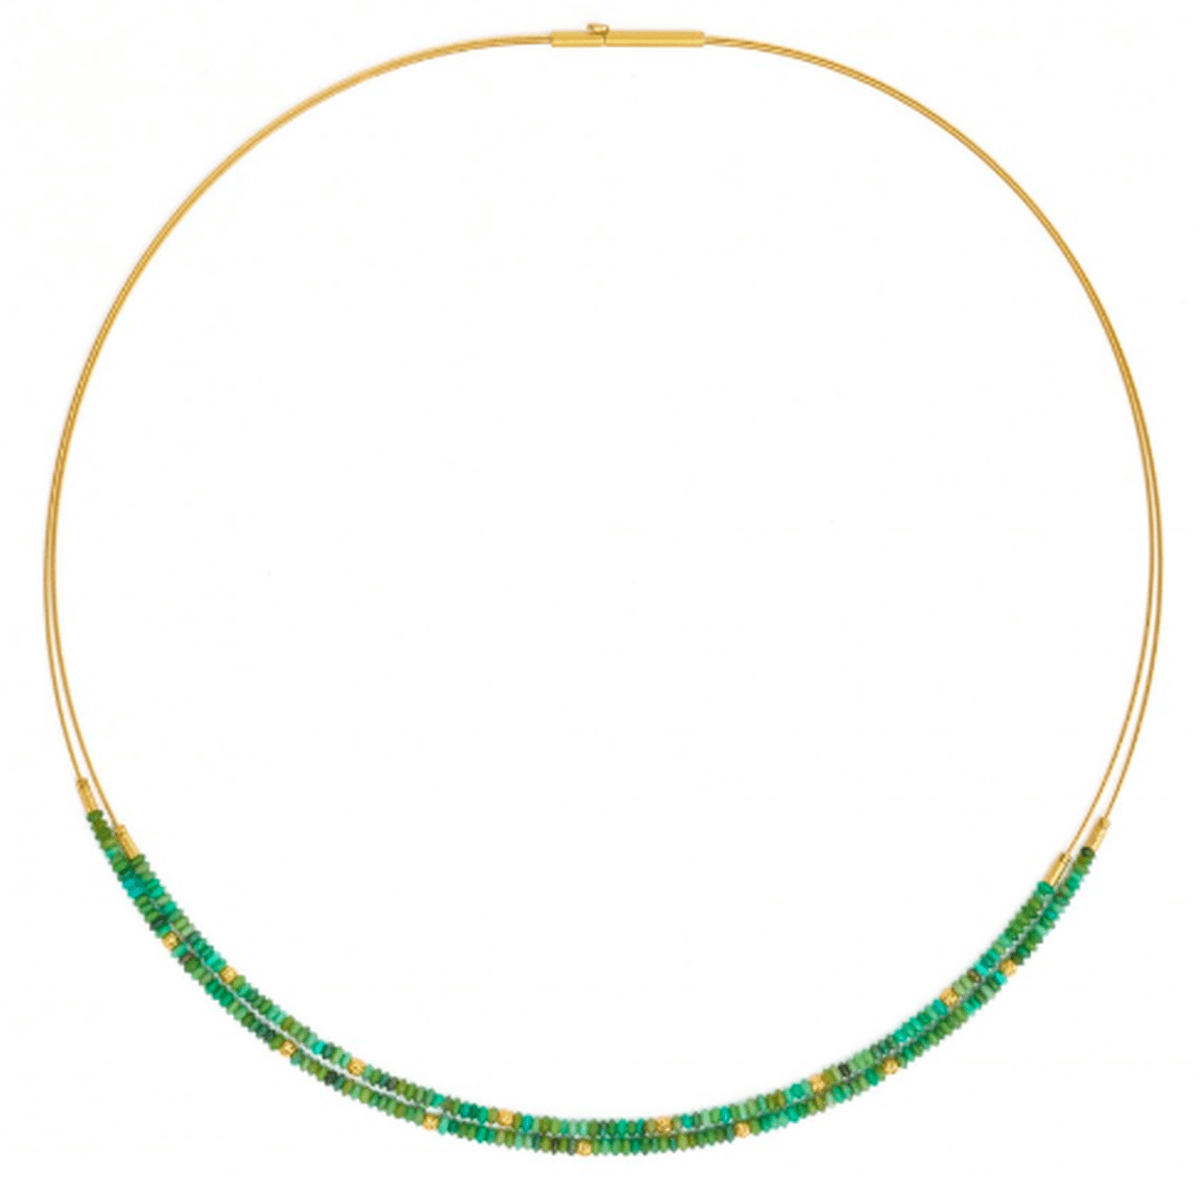 Lindi Green Turquoise Necklace - 85238356-Bernd Wolf-Renee Taylor Gallery